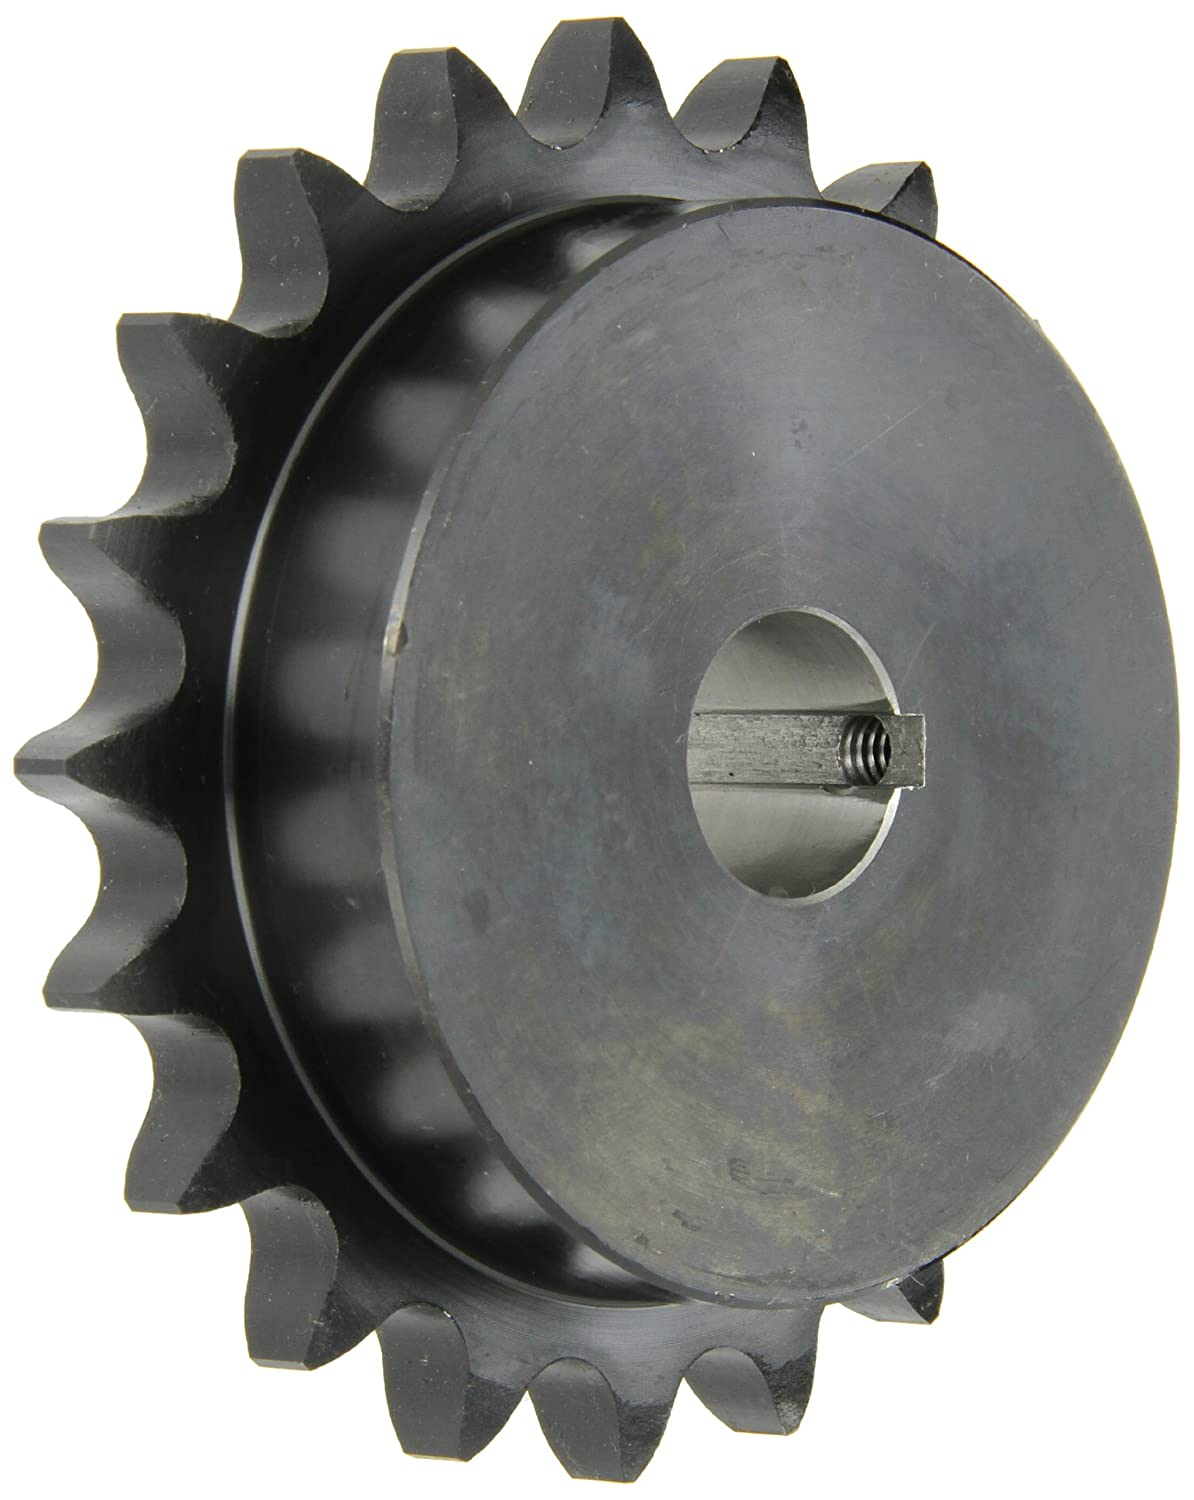 20 Teeth Regal Steel Browning H6020X1 Finished Bore Roller Chain Sprocket Single Strand Hardened Teeth